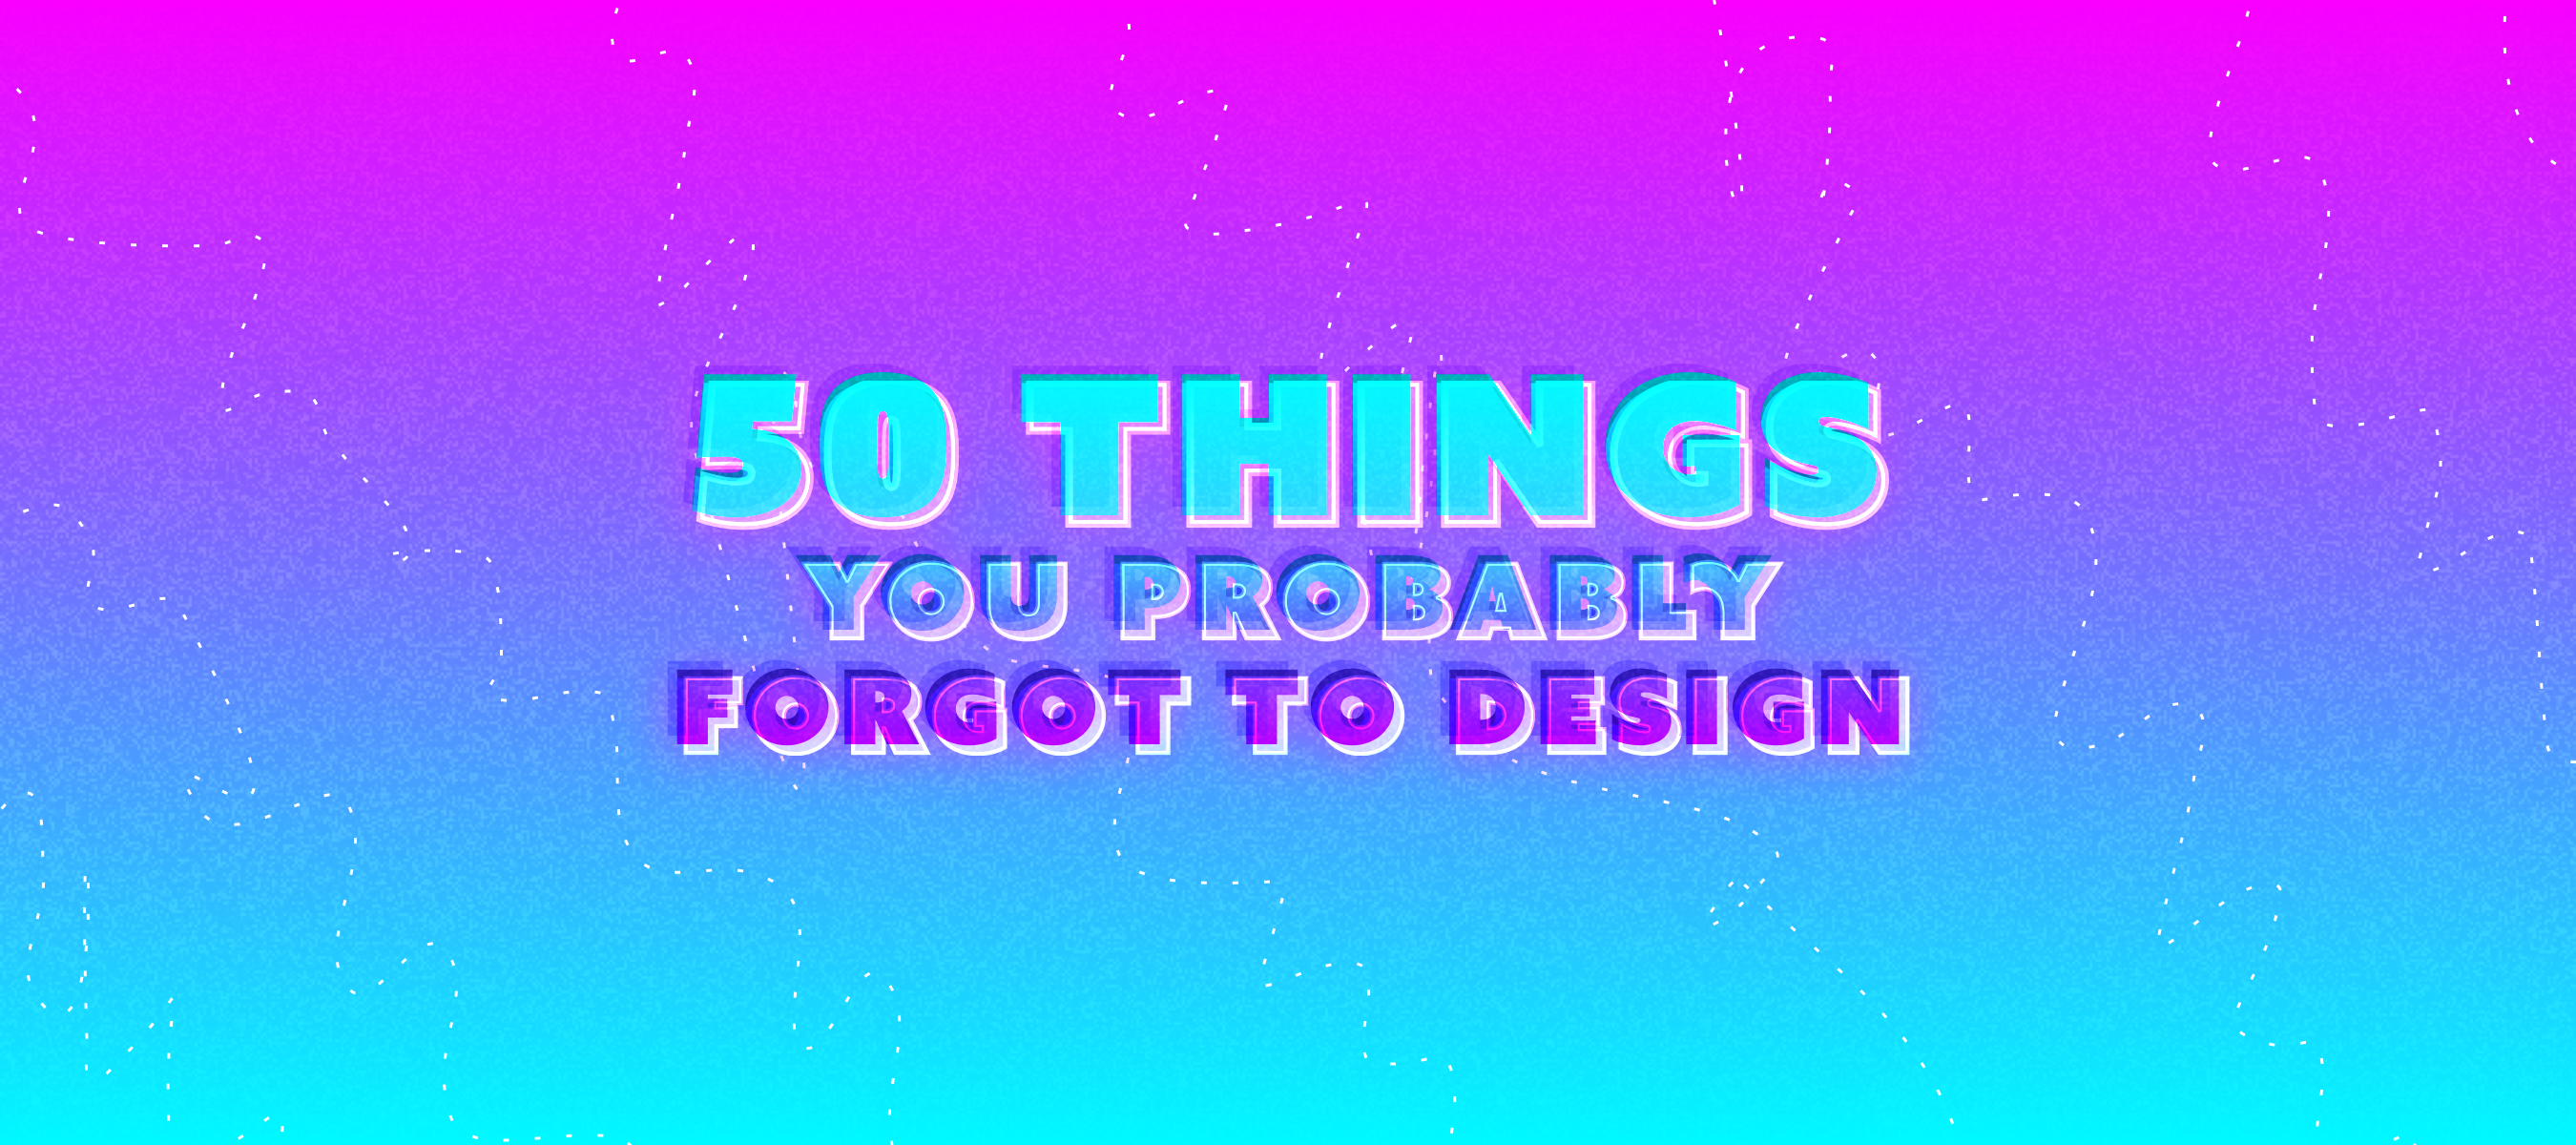 3037f321a28 50 Things You [Probably] Forgot To Design - UX Power Tools - Medium